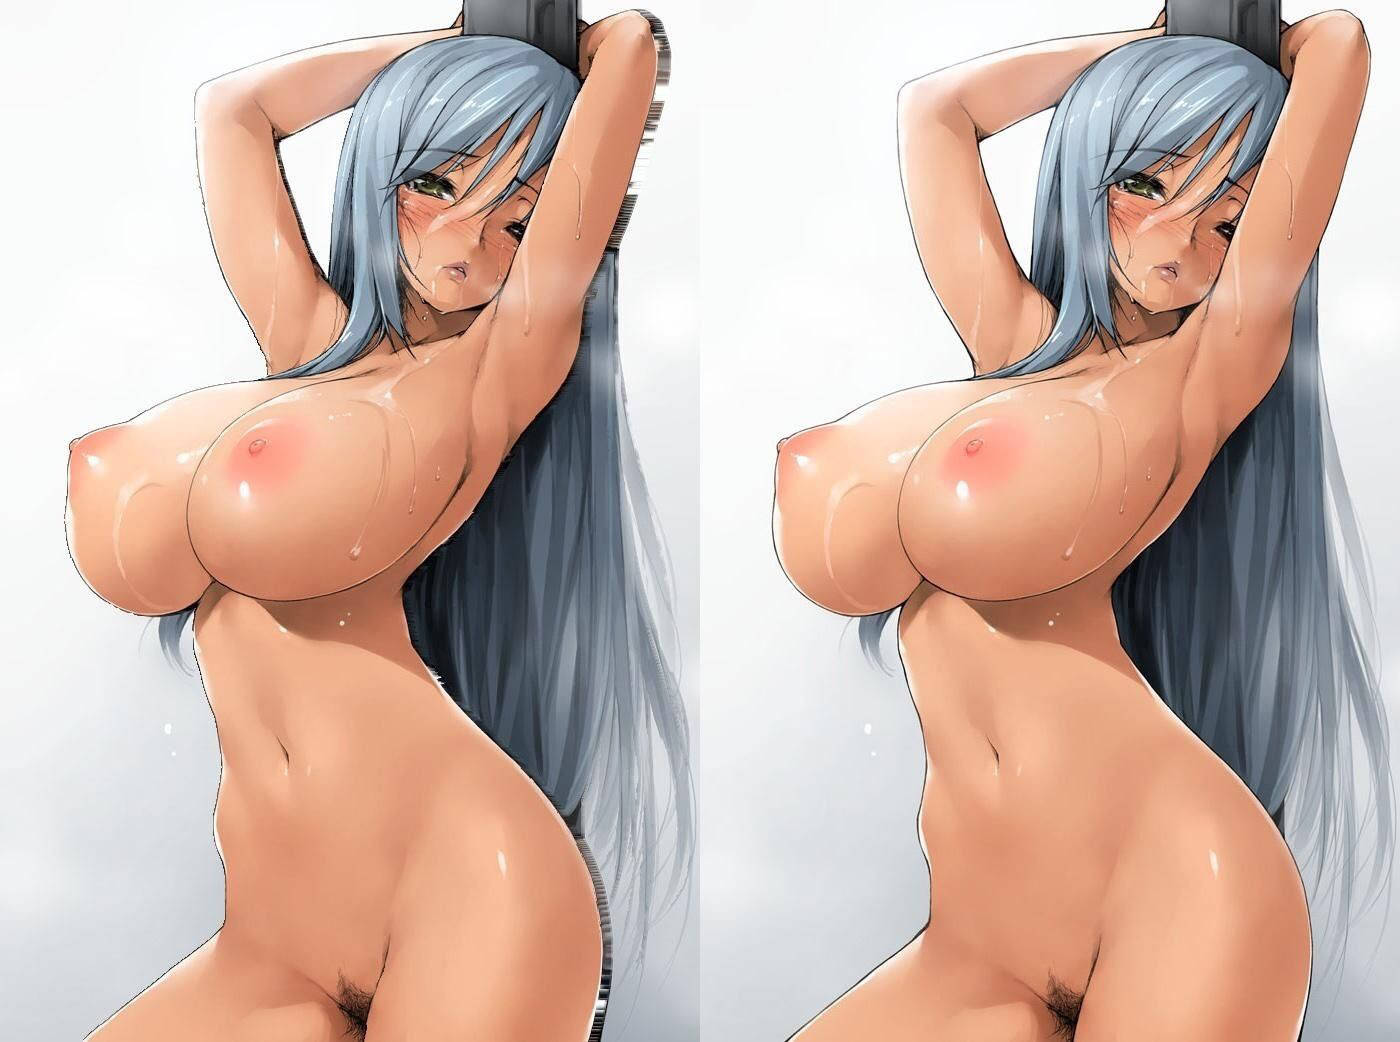 Side by side naked girls 3d porncraft pictures